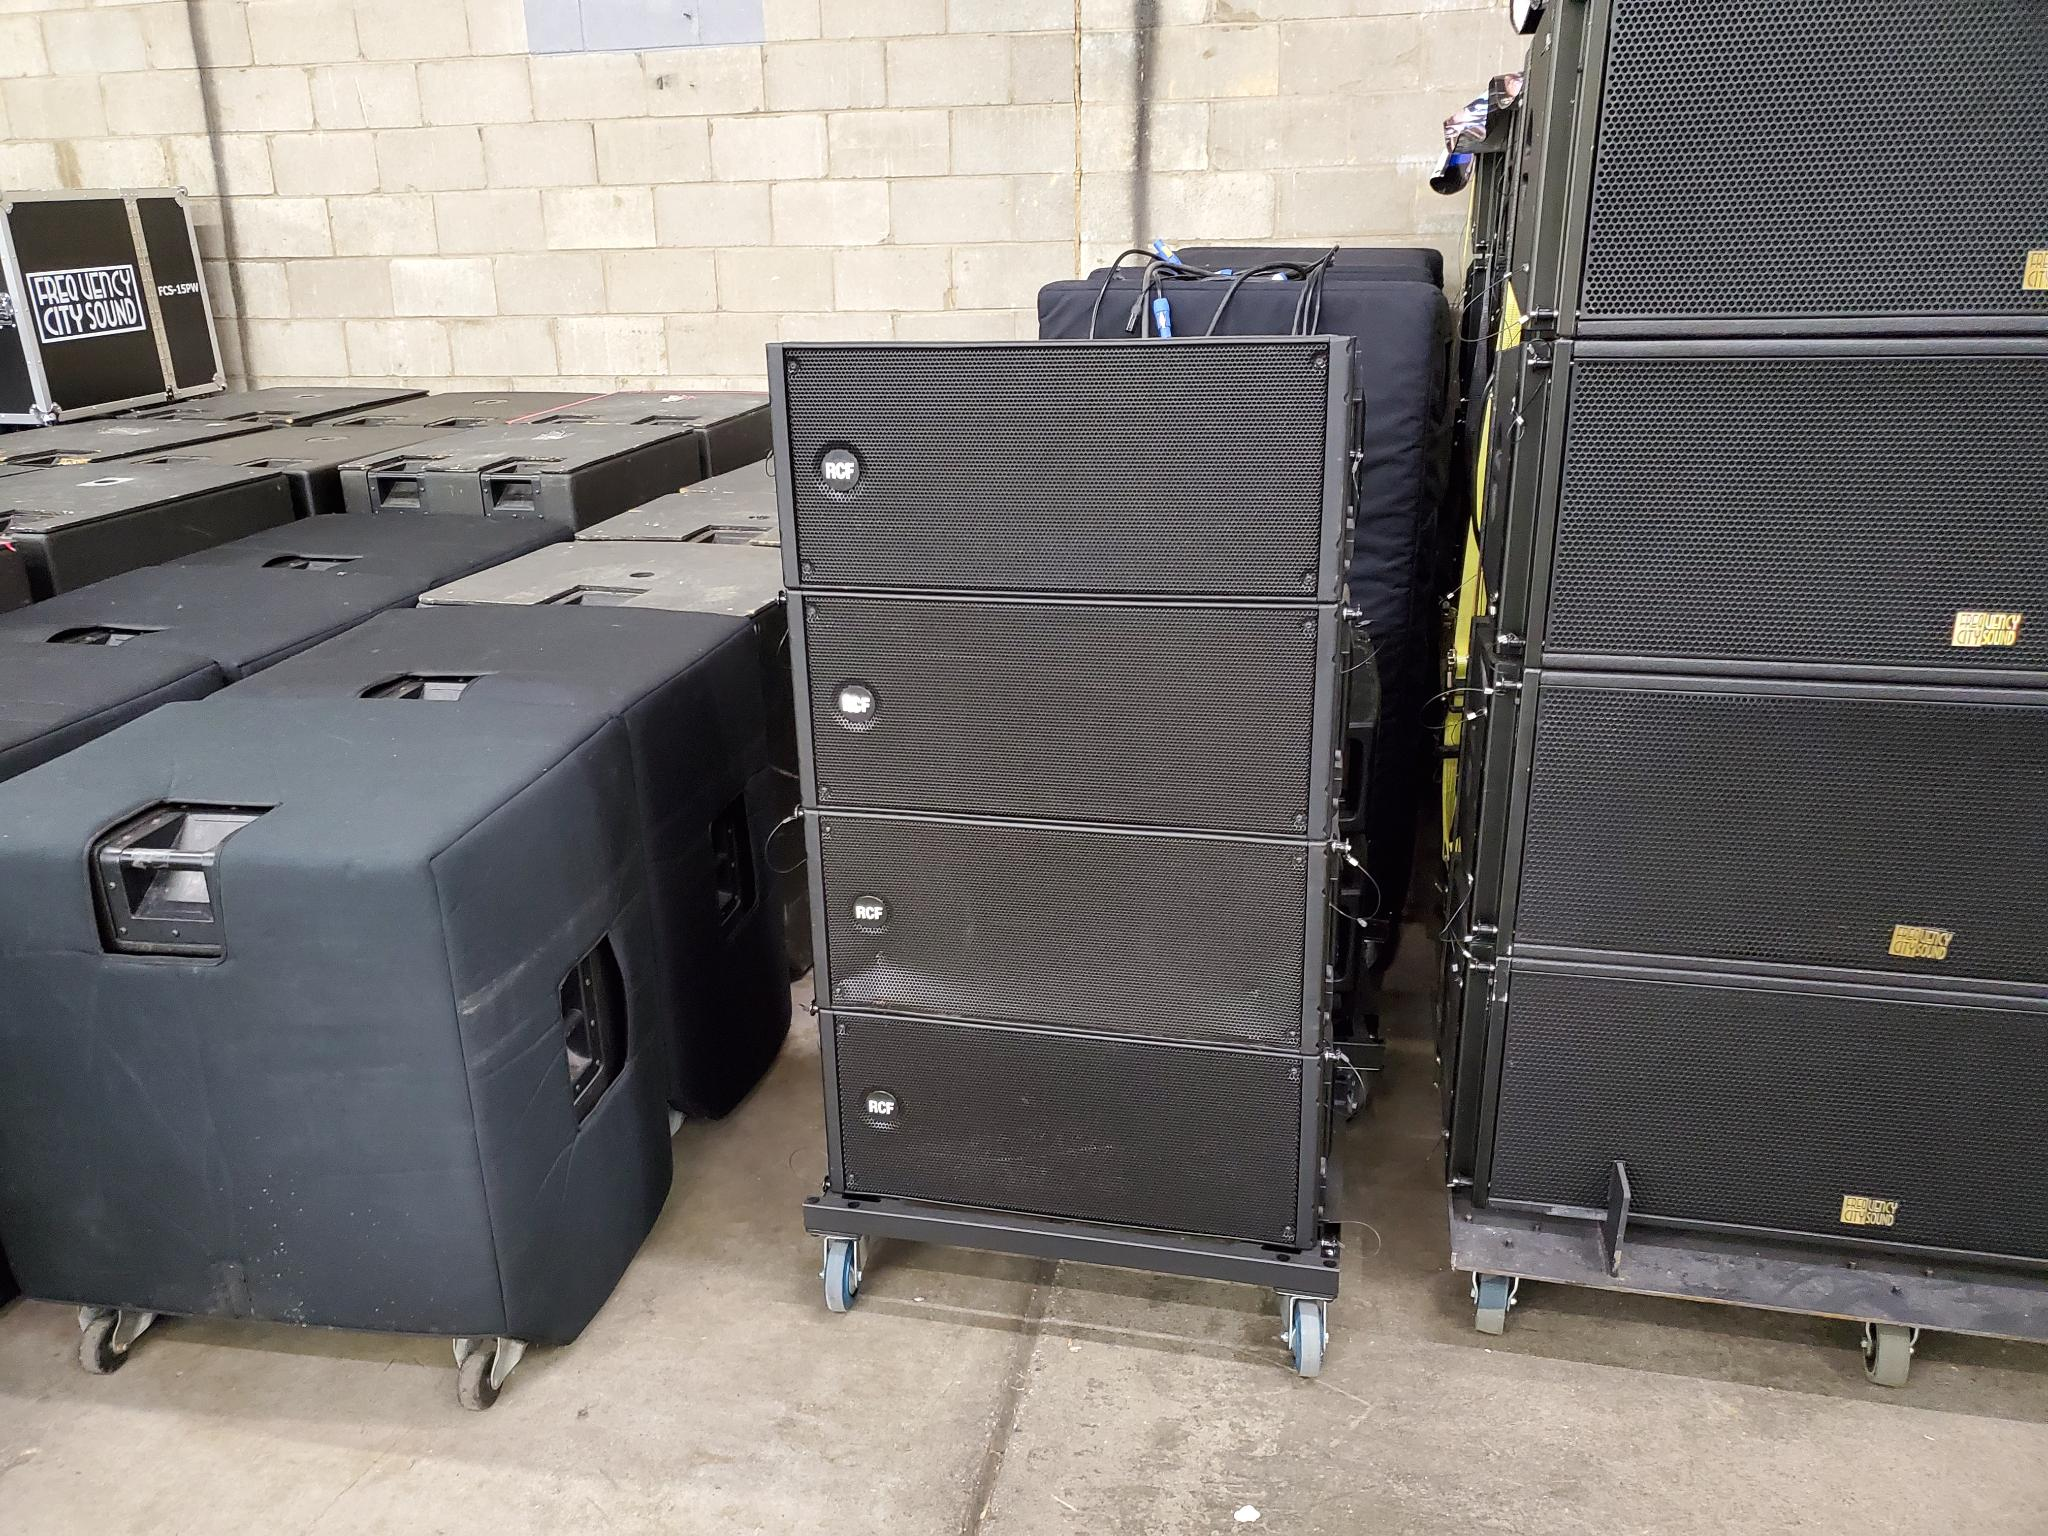 "1400 Watt Peak power - 700 Watt RMS 135 dB max SPL 55 Hz 20 kHz frequency response 2 x 10"" Woofers 1 x 3"" Compression Driver DSP controlled Input section with selectable presets Tour grade safe and solid variable mechanics Composite PP enclosure structurally wooden reinforced"